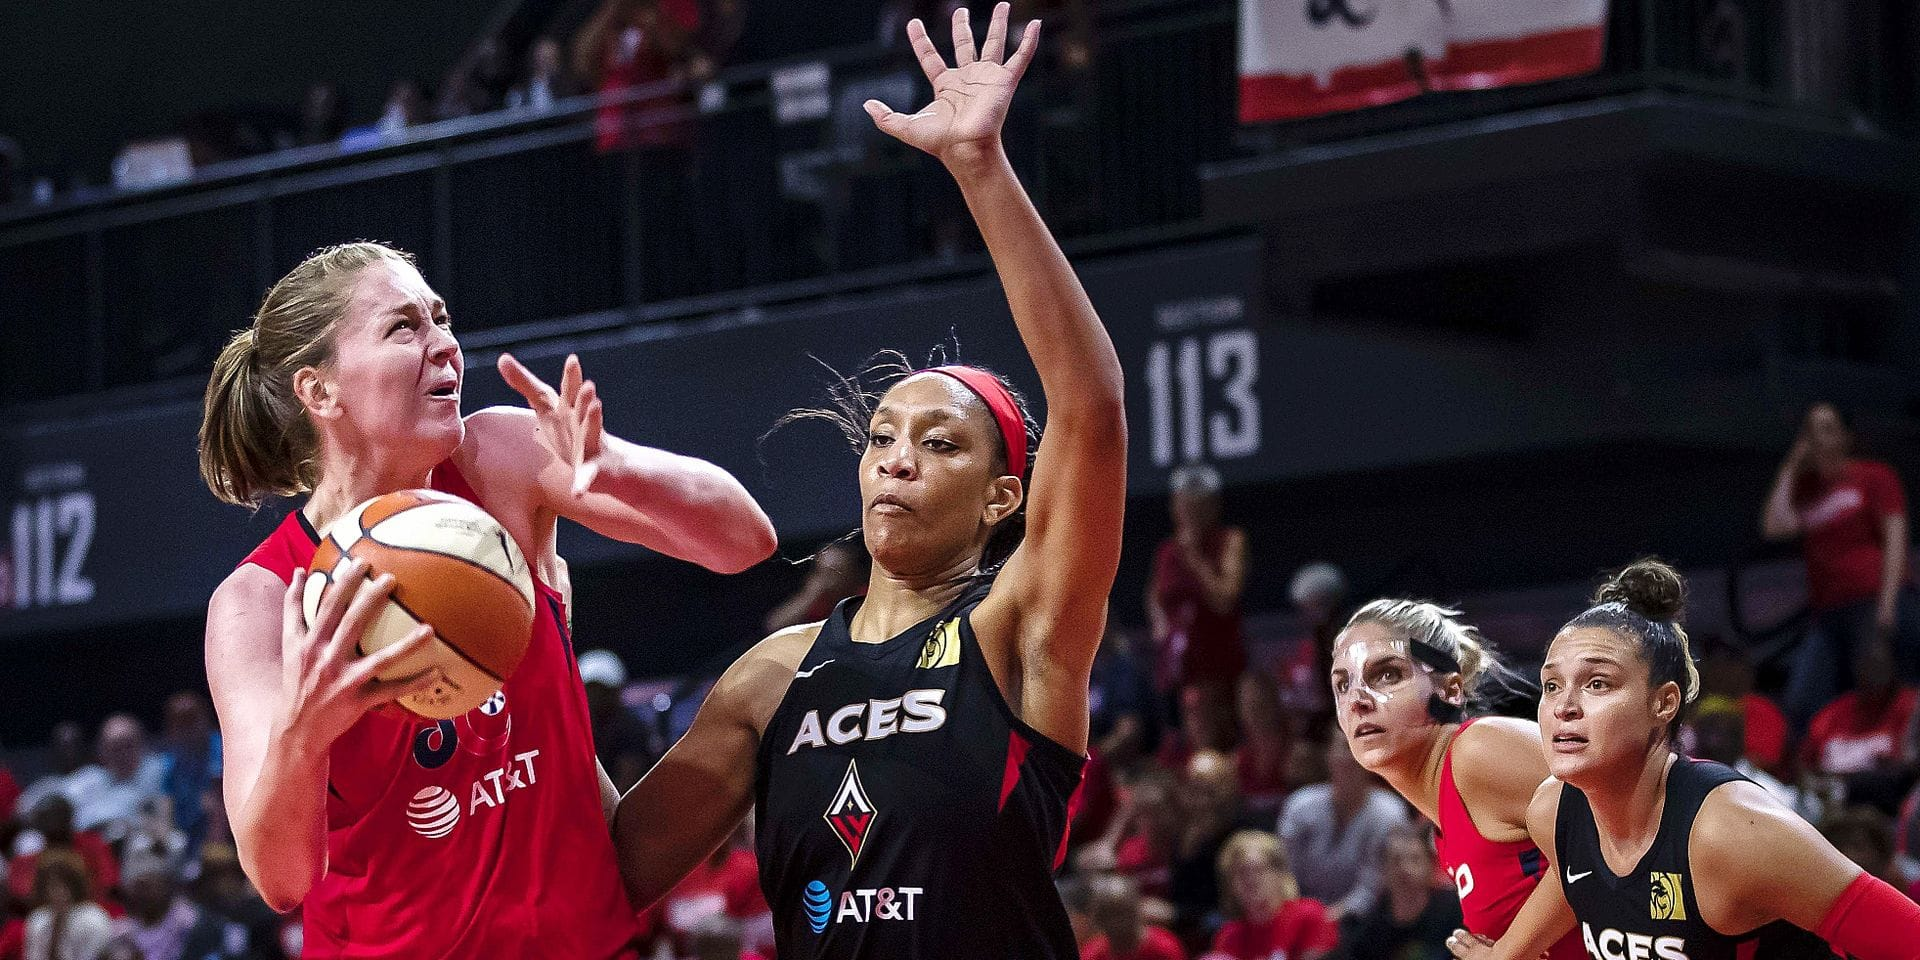 WASHINGTON, DC - SEPTEMBER 17: Emma Meesseman #33 of the Washington Mystics drives to the basket against A'ja Wilson #22 of the Las Vegas Aces during the second half of Game One of the 2019 WNBA playoffs at St Elizabeths East Entertainment & Sports Arena on September 17, 2019 in Washington, DC. NOTE TO USER: User expressly acknowledges and agrees that, by downloading and or using this photograph, User is consenting to the terms and conditions of the Getty Images License Agreement. Scott Taetsch/Getty Images/AFP == FOR NEWSPAPERS, INTERNET, TELCOS & TELEVISION USE ONLY ==